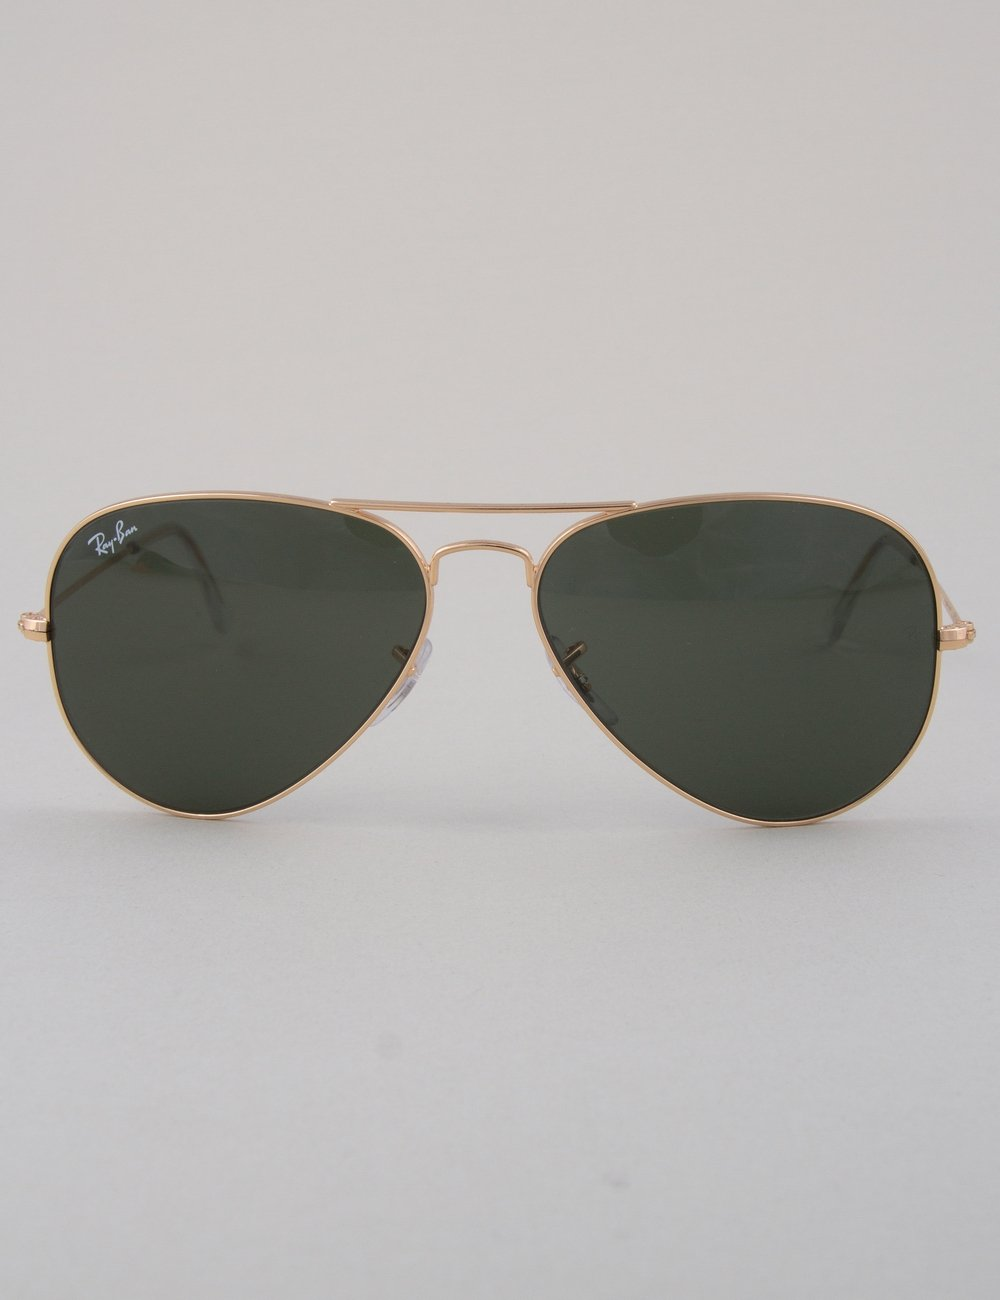 is the ray ban sale real